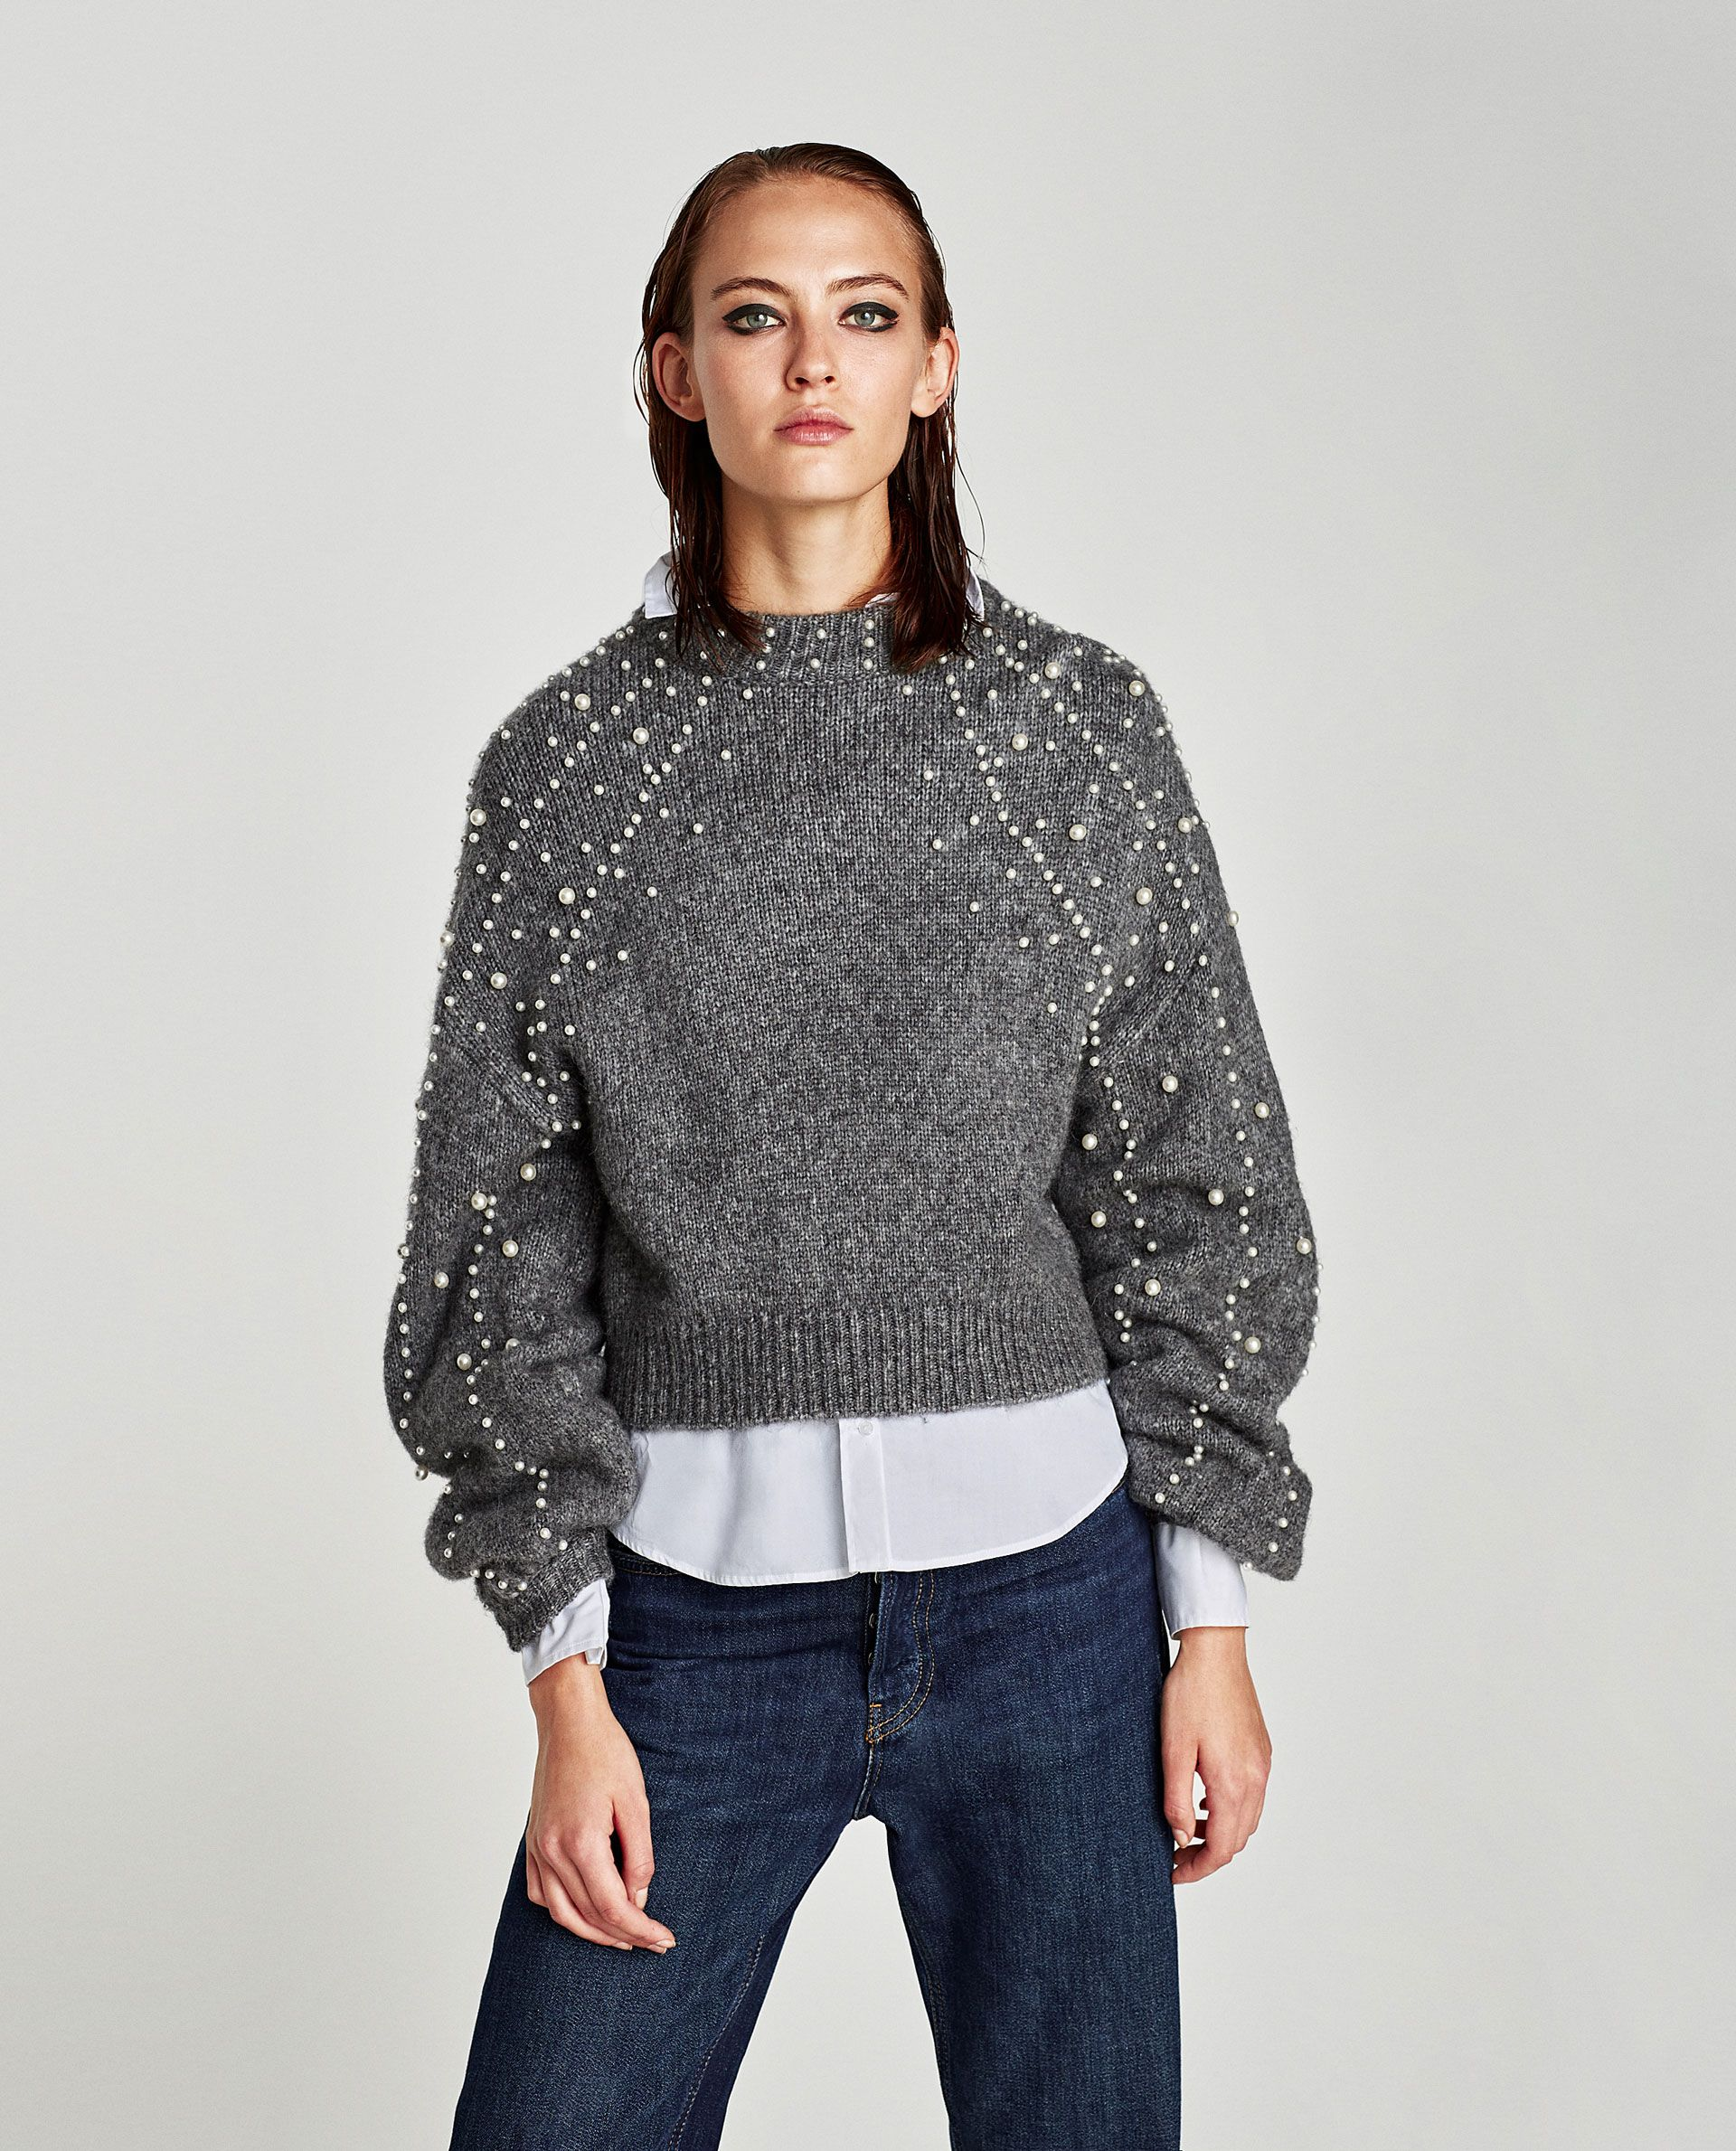 99bb68b7 CROPPED SWEATER WITH FAUX PEARLS | What to wear | Cropped sweater ...